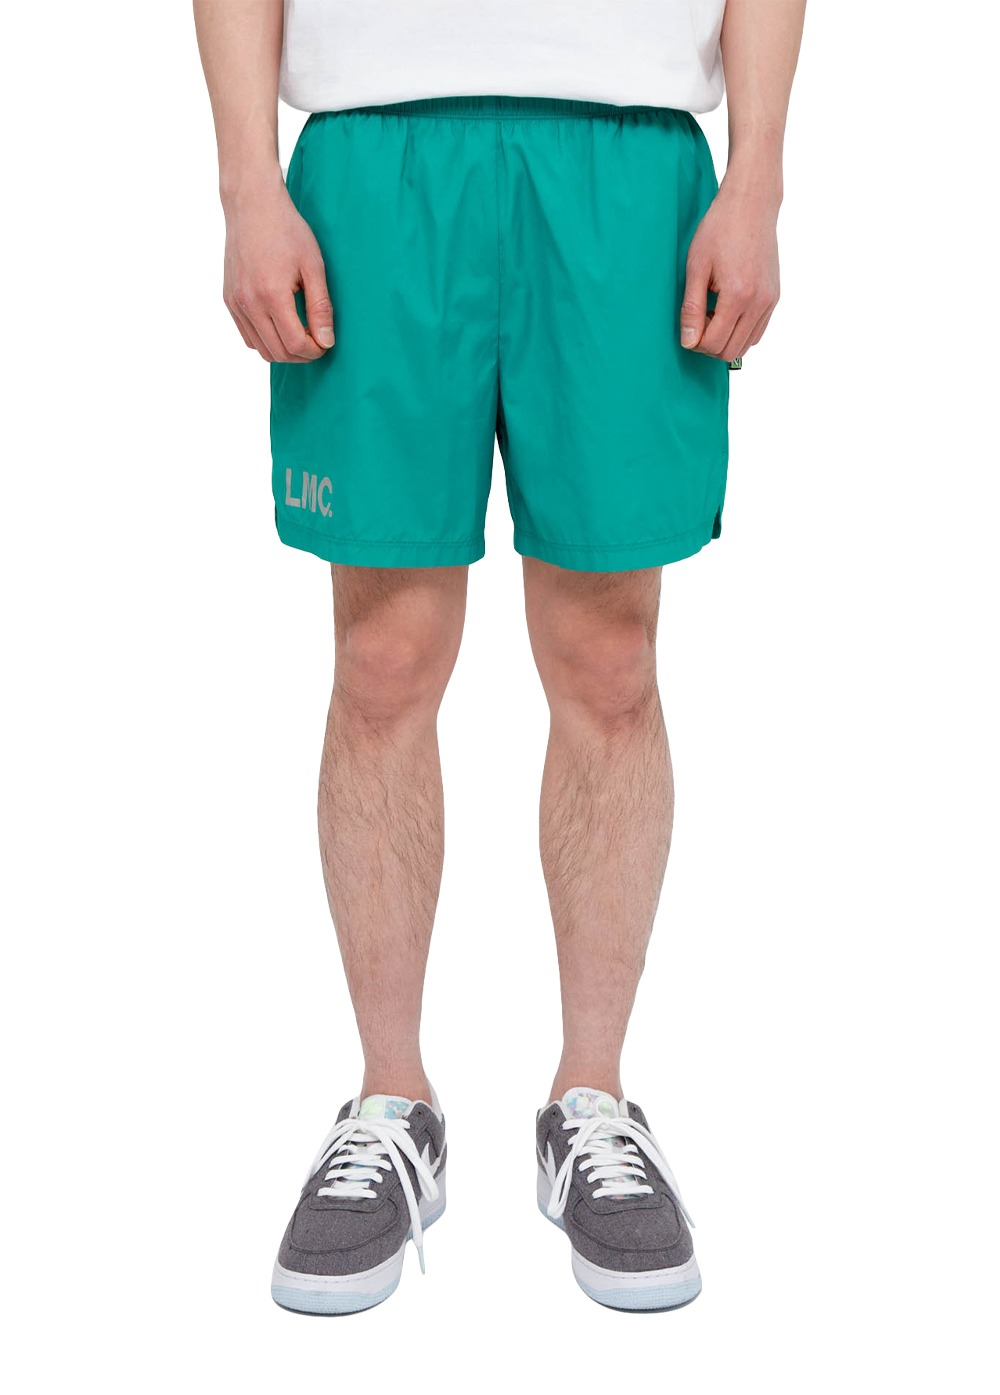 LMC ACTIVE GEAR SPORTS SHORTS teal